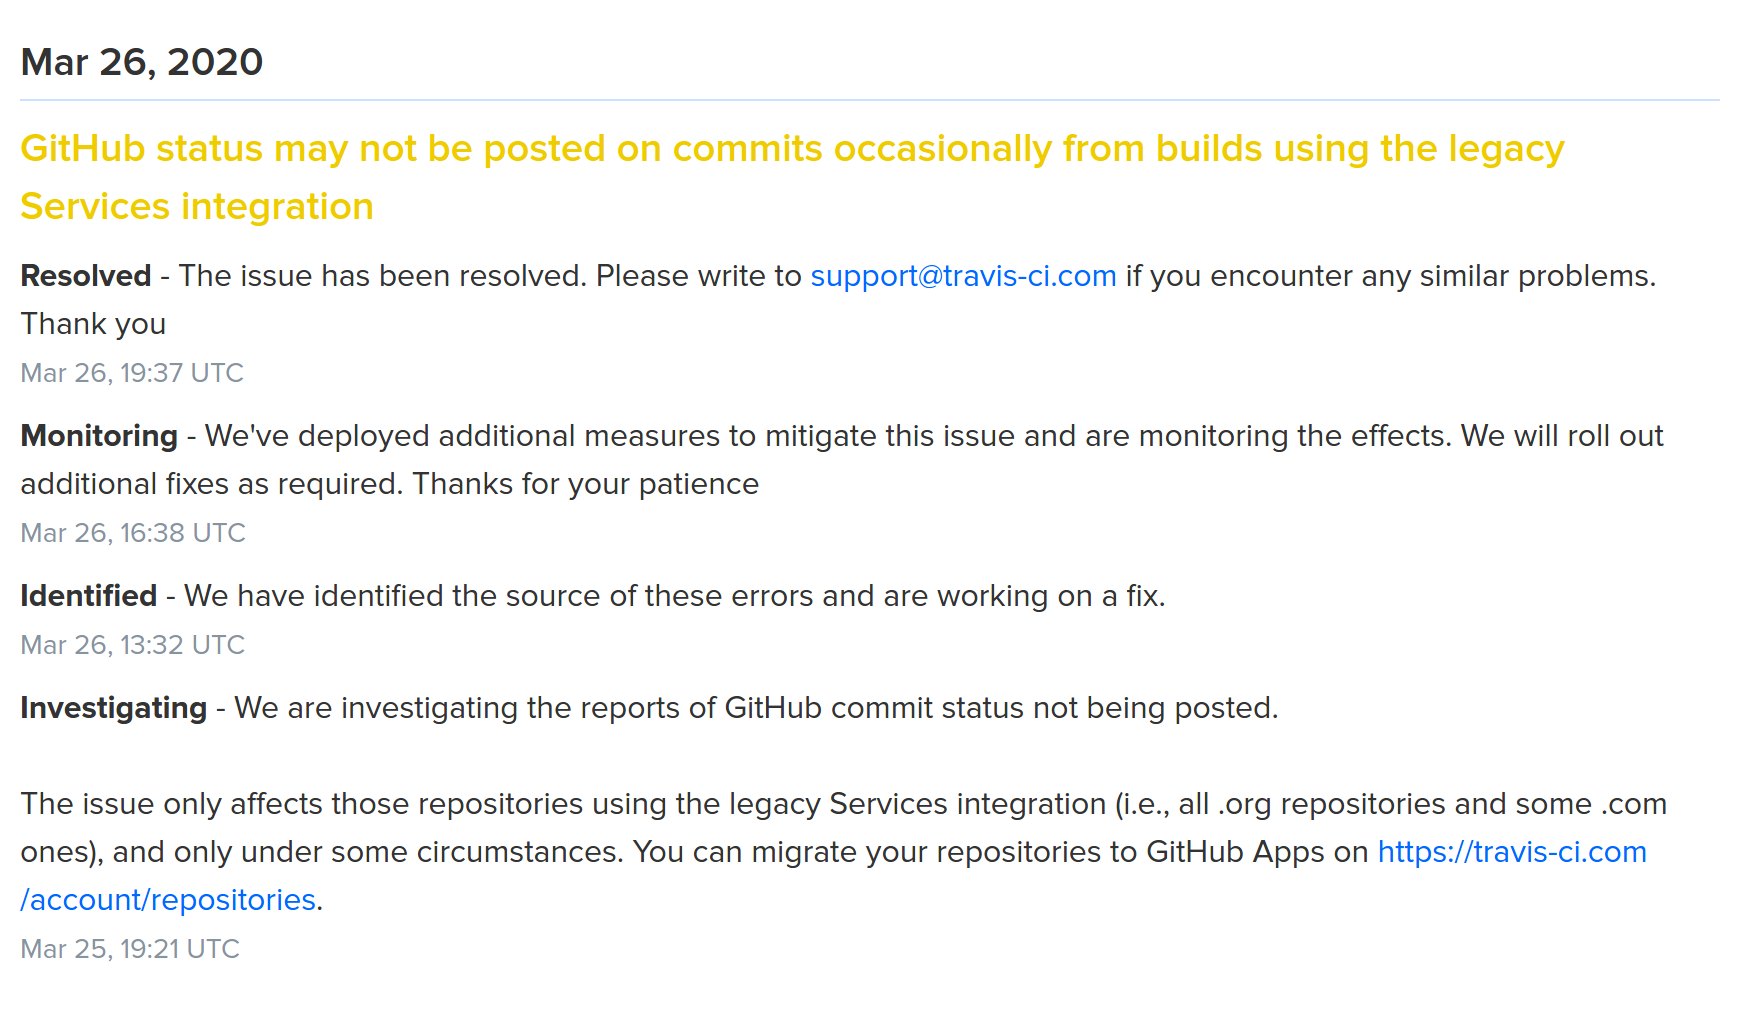 Travis status page shows GitHub commit status issue: GitHub status may not be posted on commits occasionally from builds using the legacy Services integration.